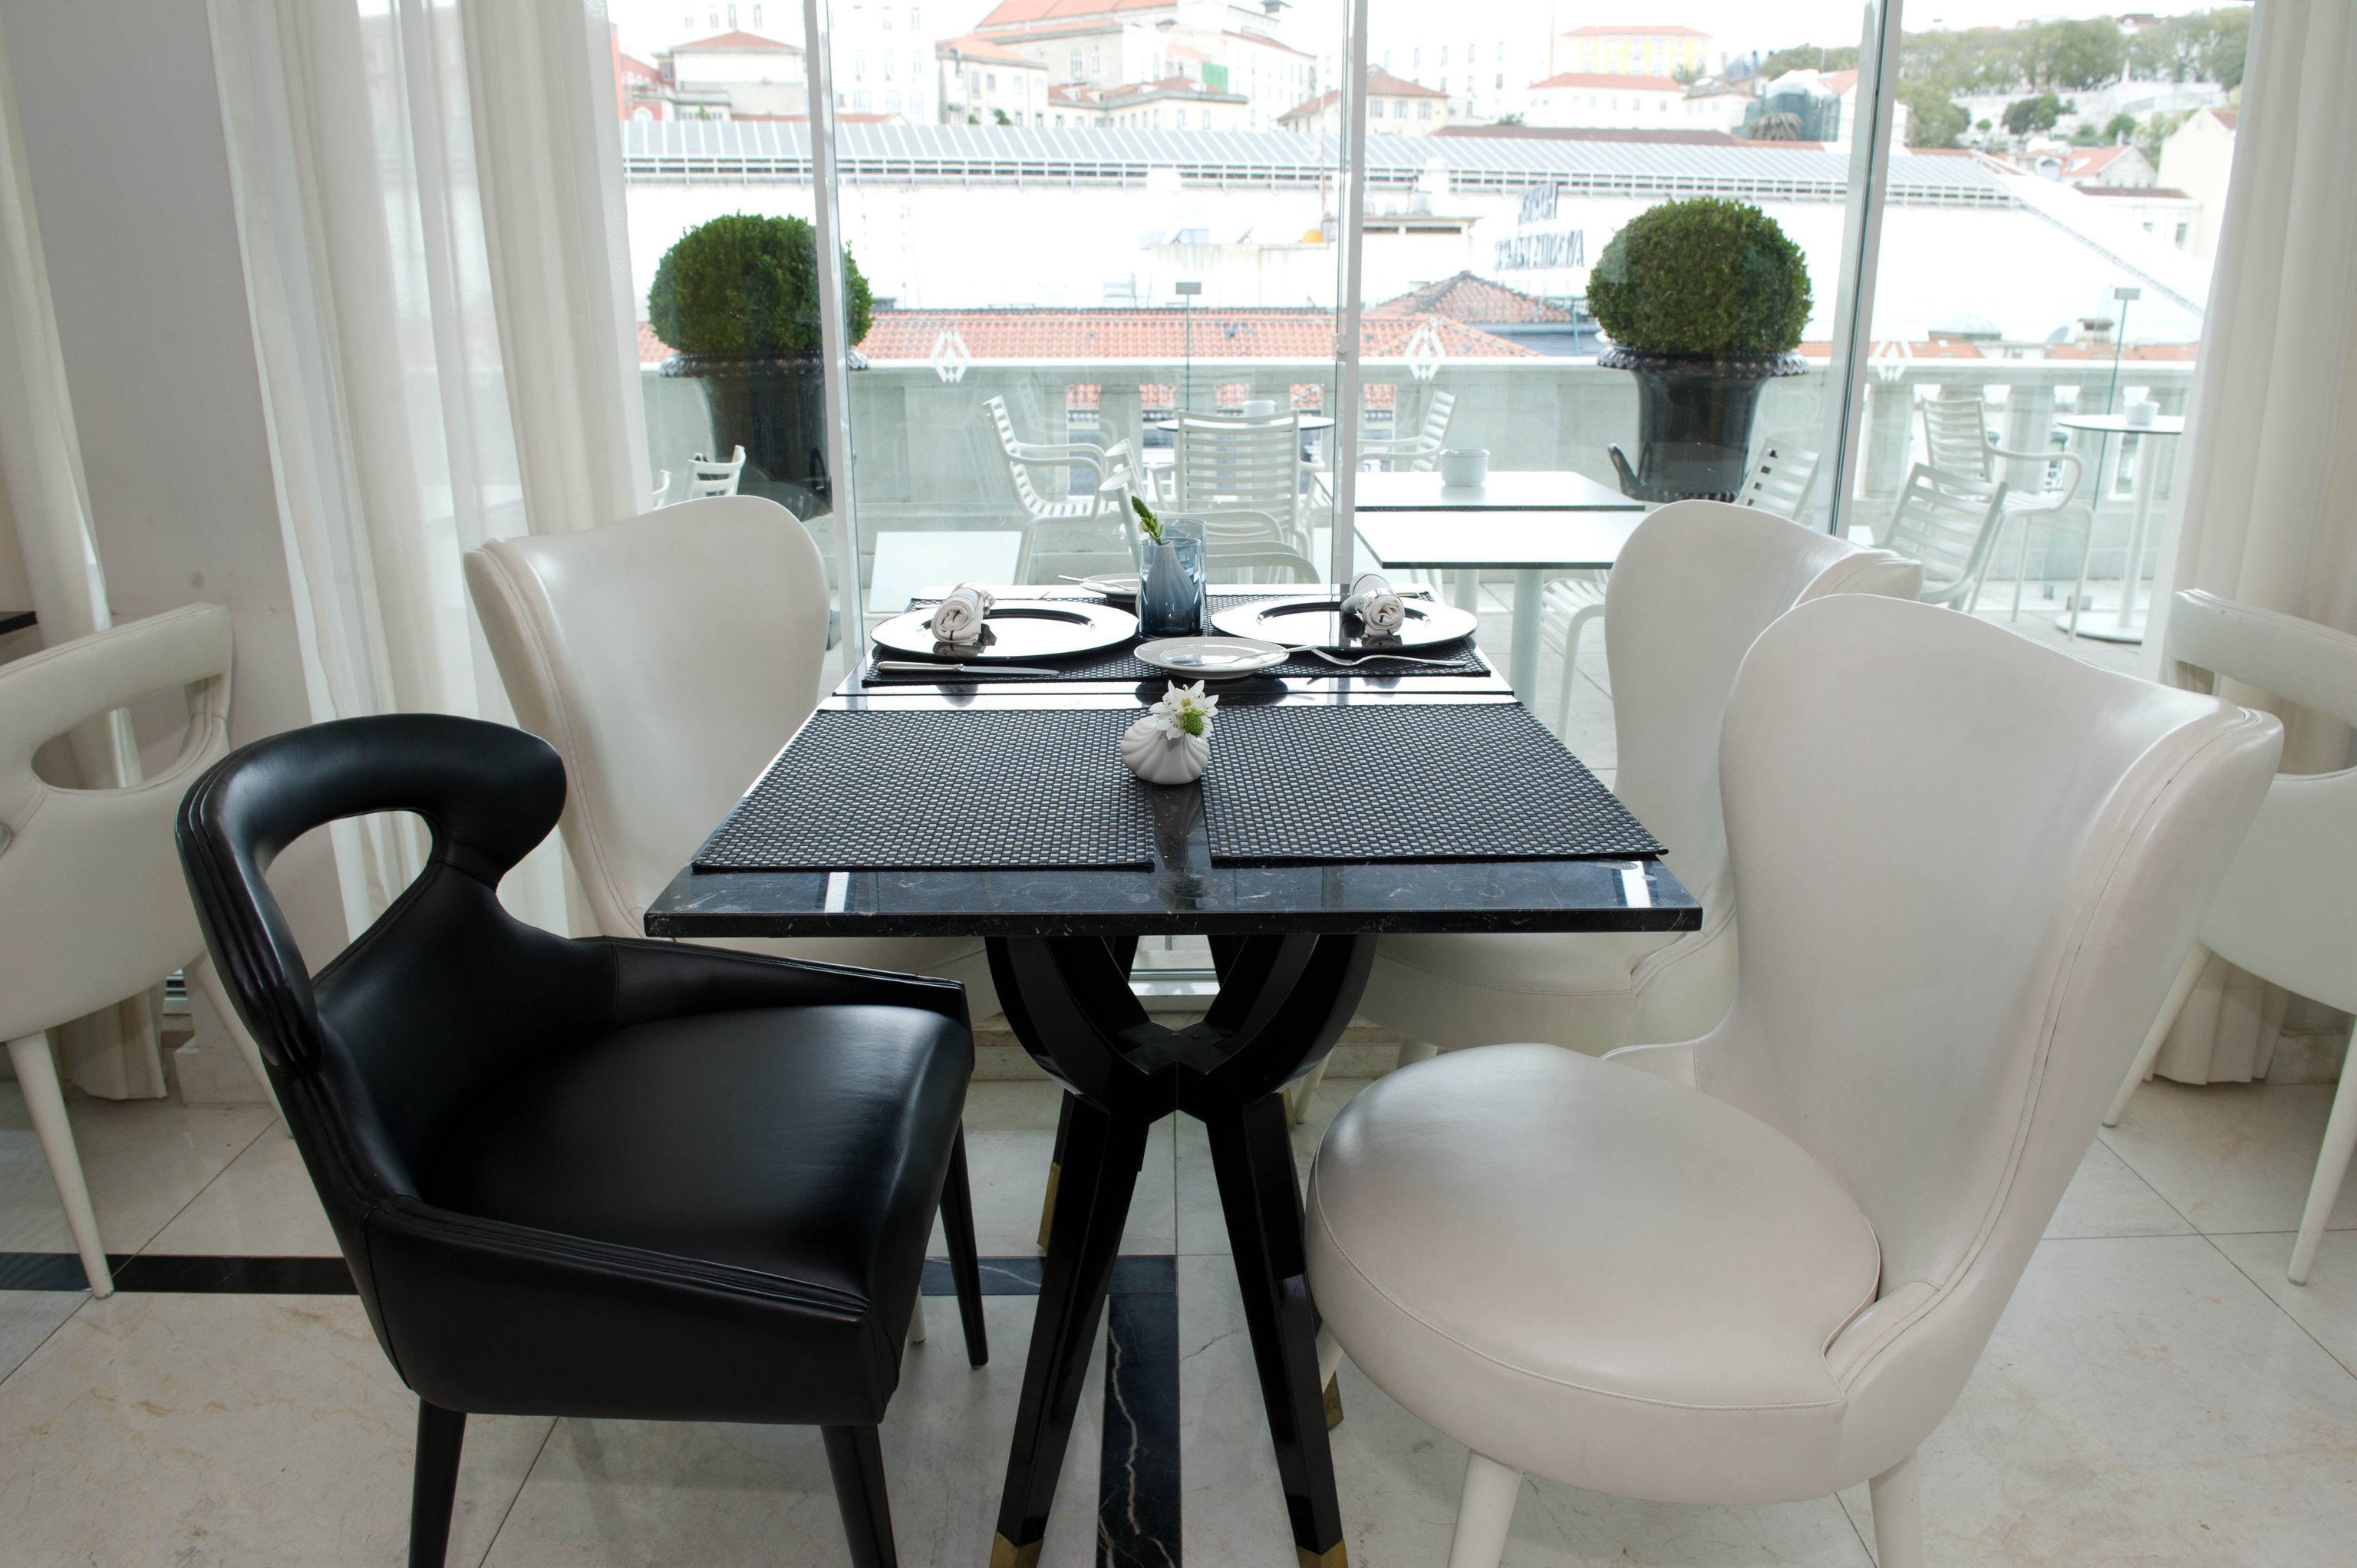 chair property office living room home condominium waiting room dining table